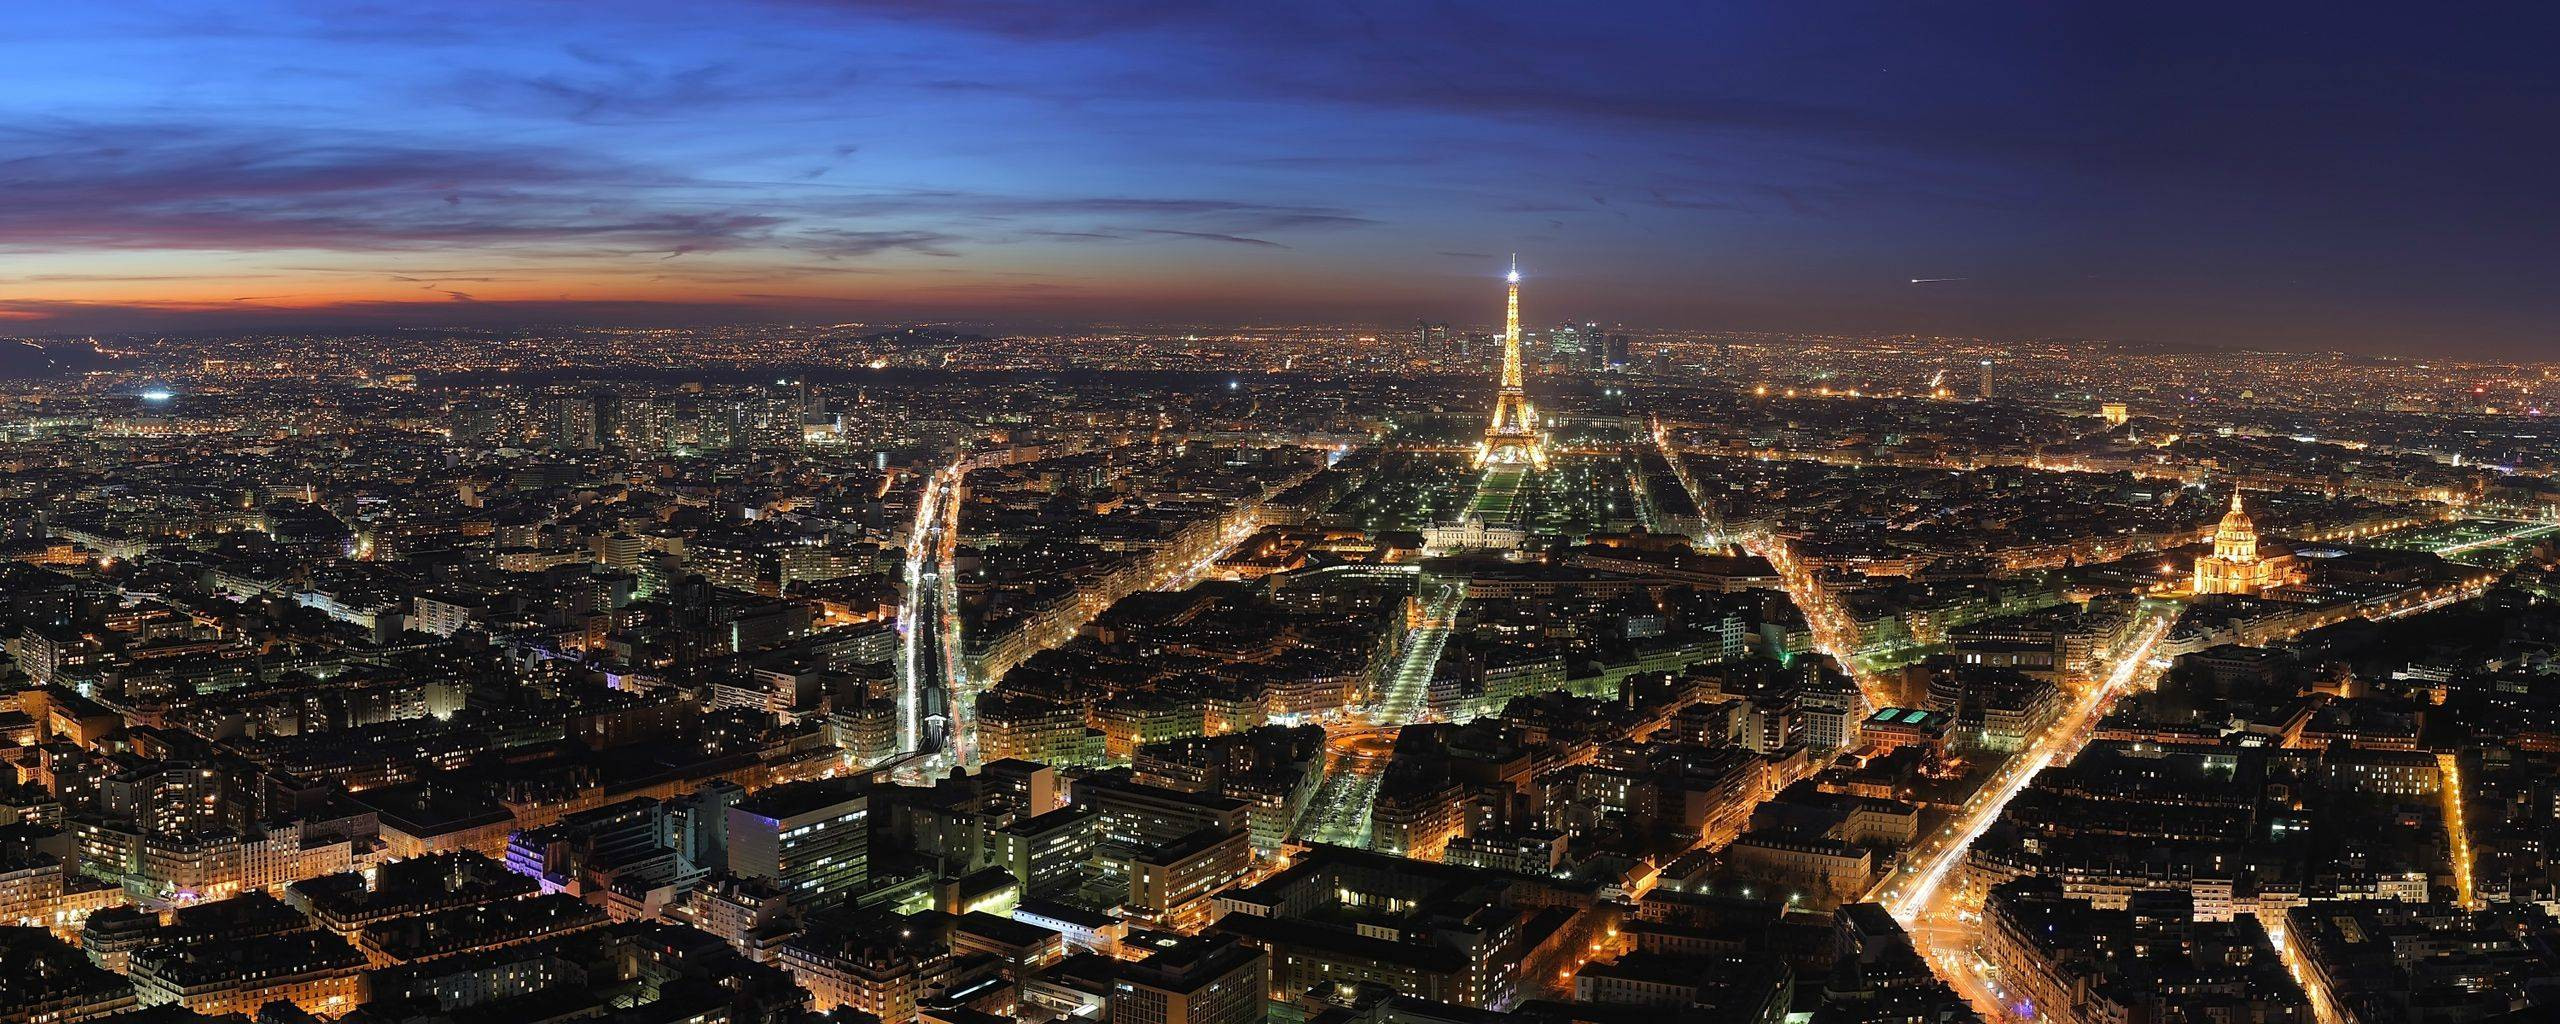 Paris at night-2